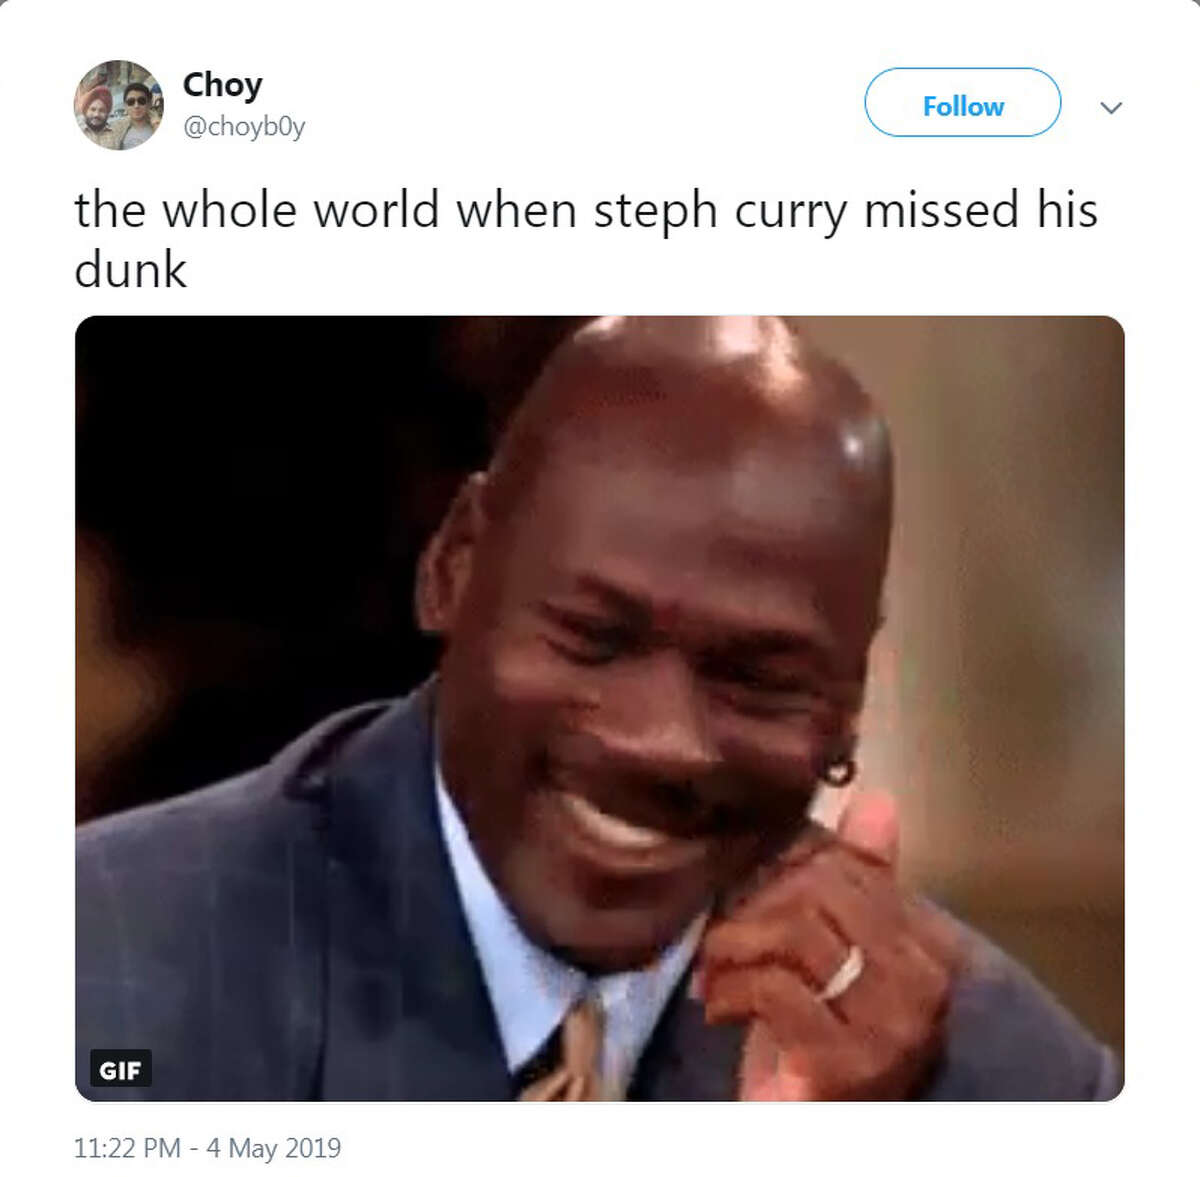 PHOTOS: Best memes from Steph Curry's poor Game 3 against the Rockets Twitter users went after Golden State's Steph Curry when he played poorly and missed a dunk in a Game 3 loss to the Rockets on Saturday, May 4, 2019. Browse through the photos above for a look at the internet's best reaction to Steph Curry's missed dunk in Game 3 ...